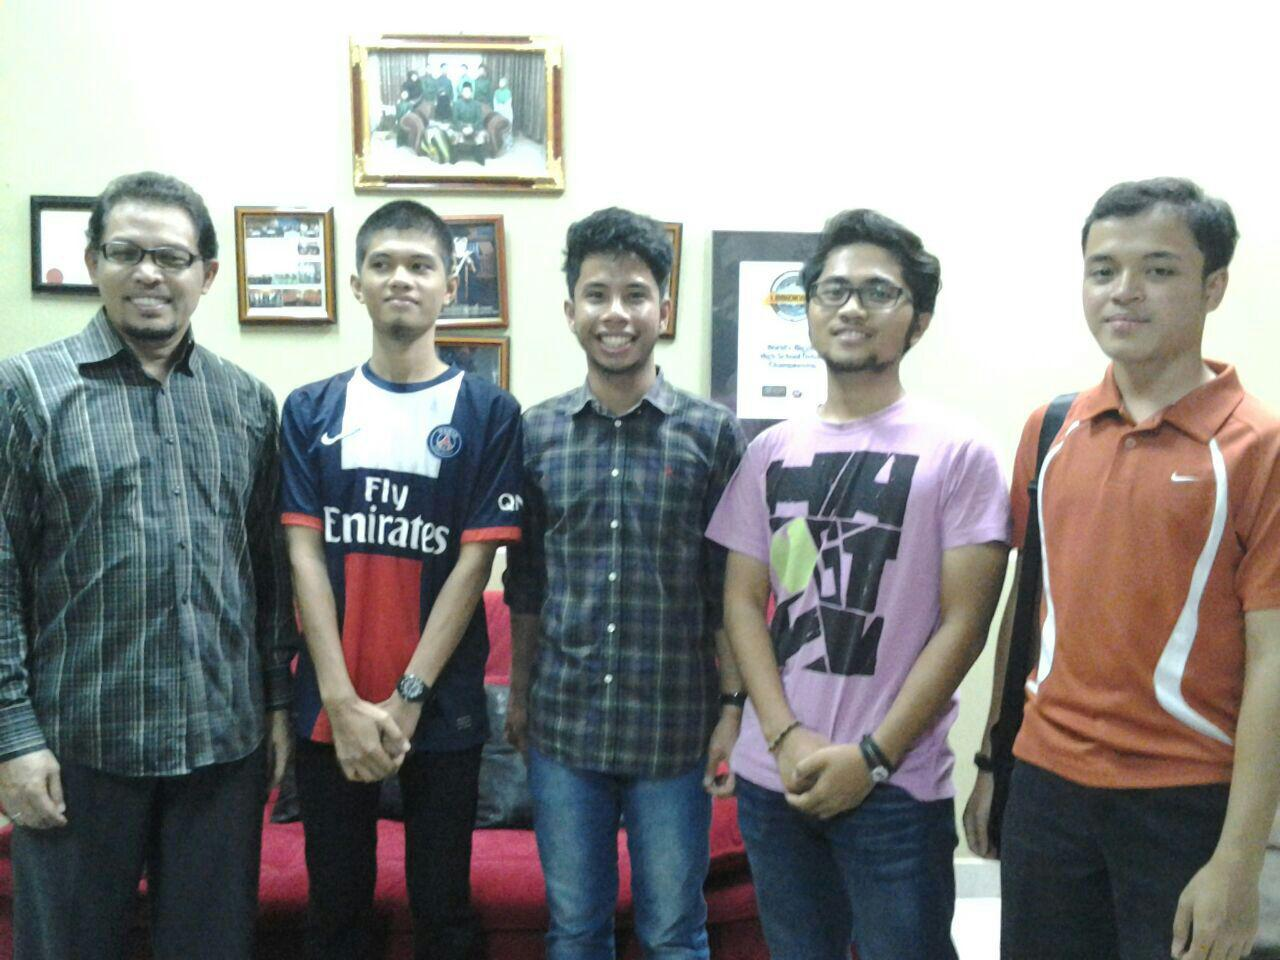 Mr Fauzi with the alumni - Naufal, Megat, Ulil & Imran.